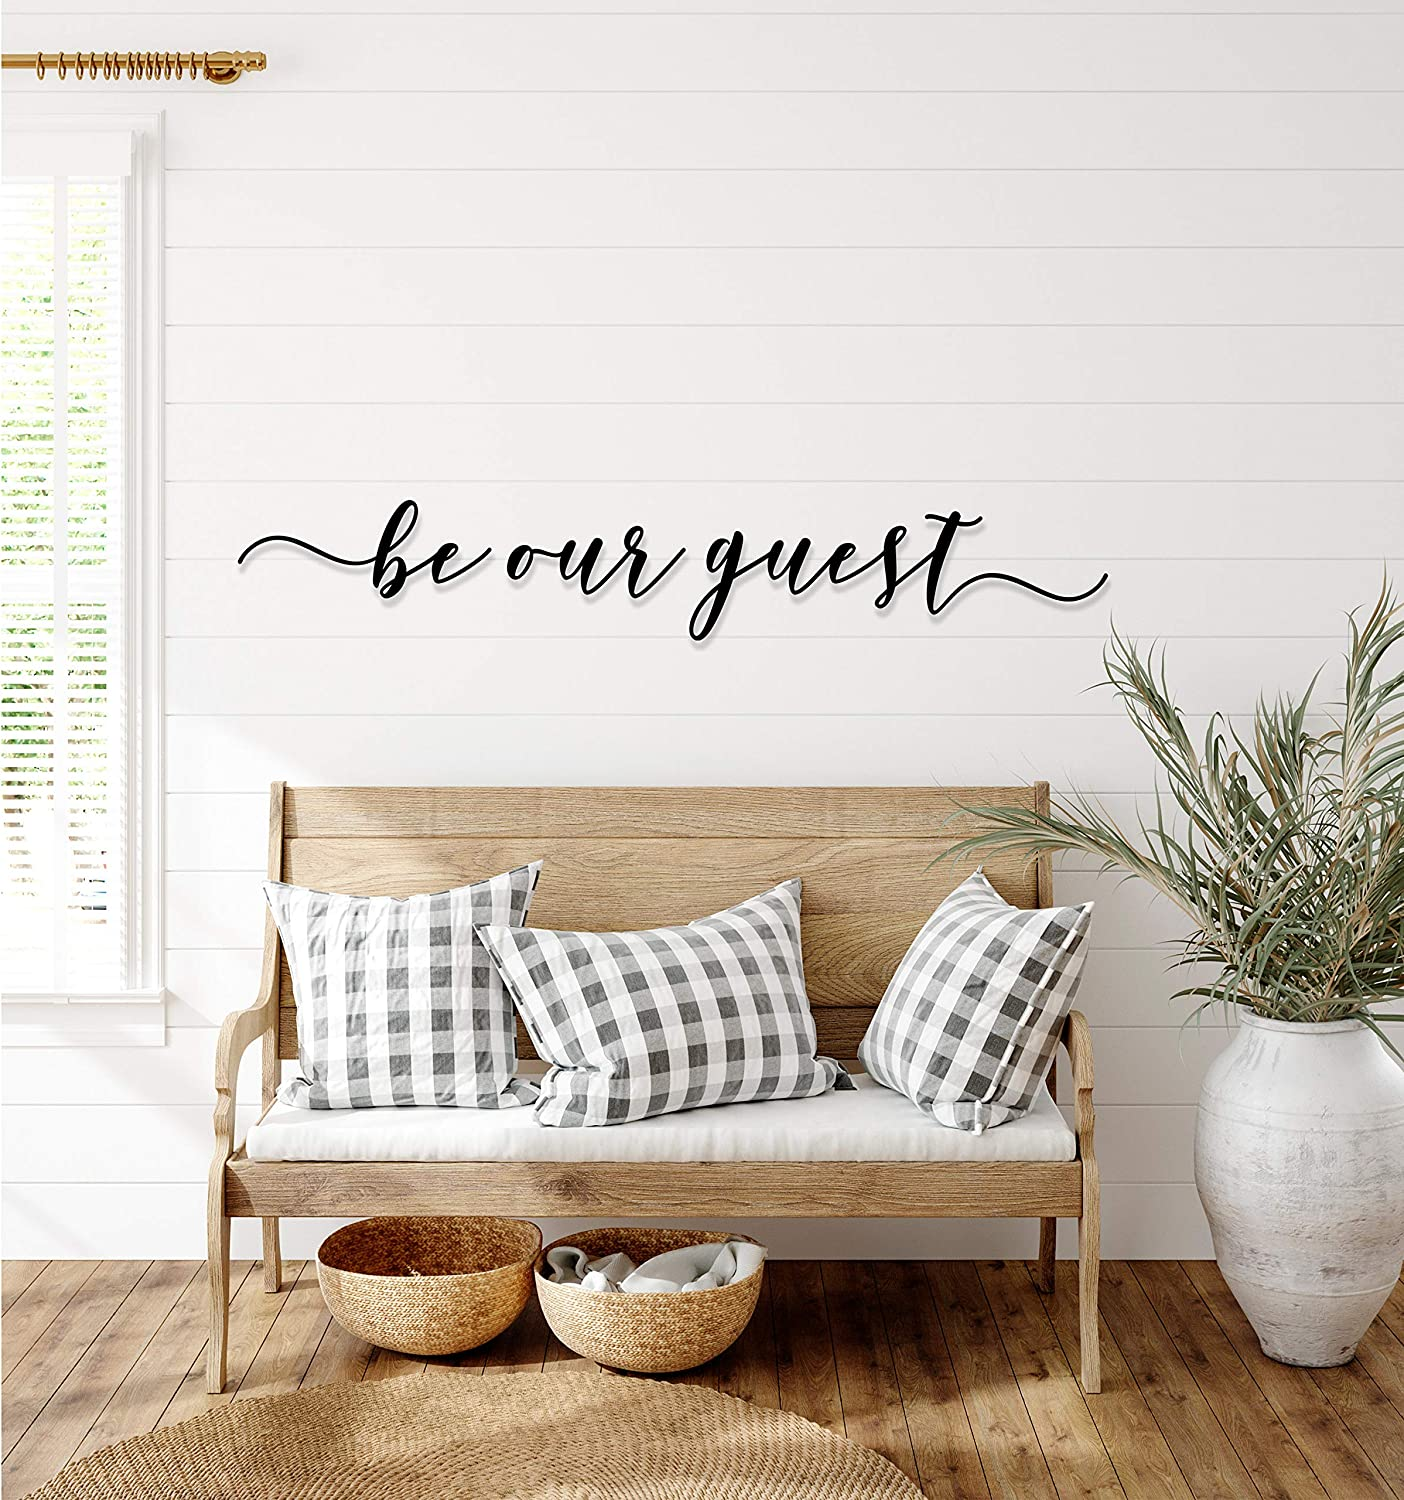 Tamengi Be Our Guest Metal Sign, Large Bedroom Wall Decor Over The Bed, Swedish Farmhouse Decor, Metal Wall Art